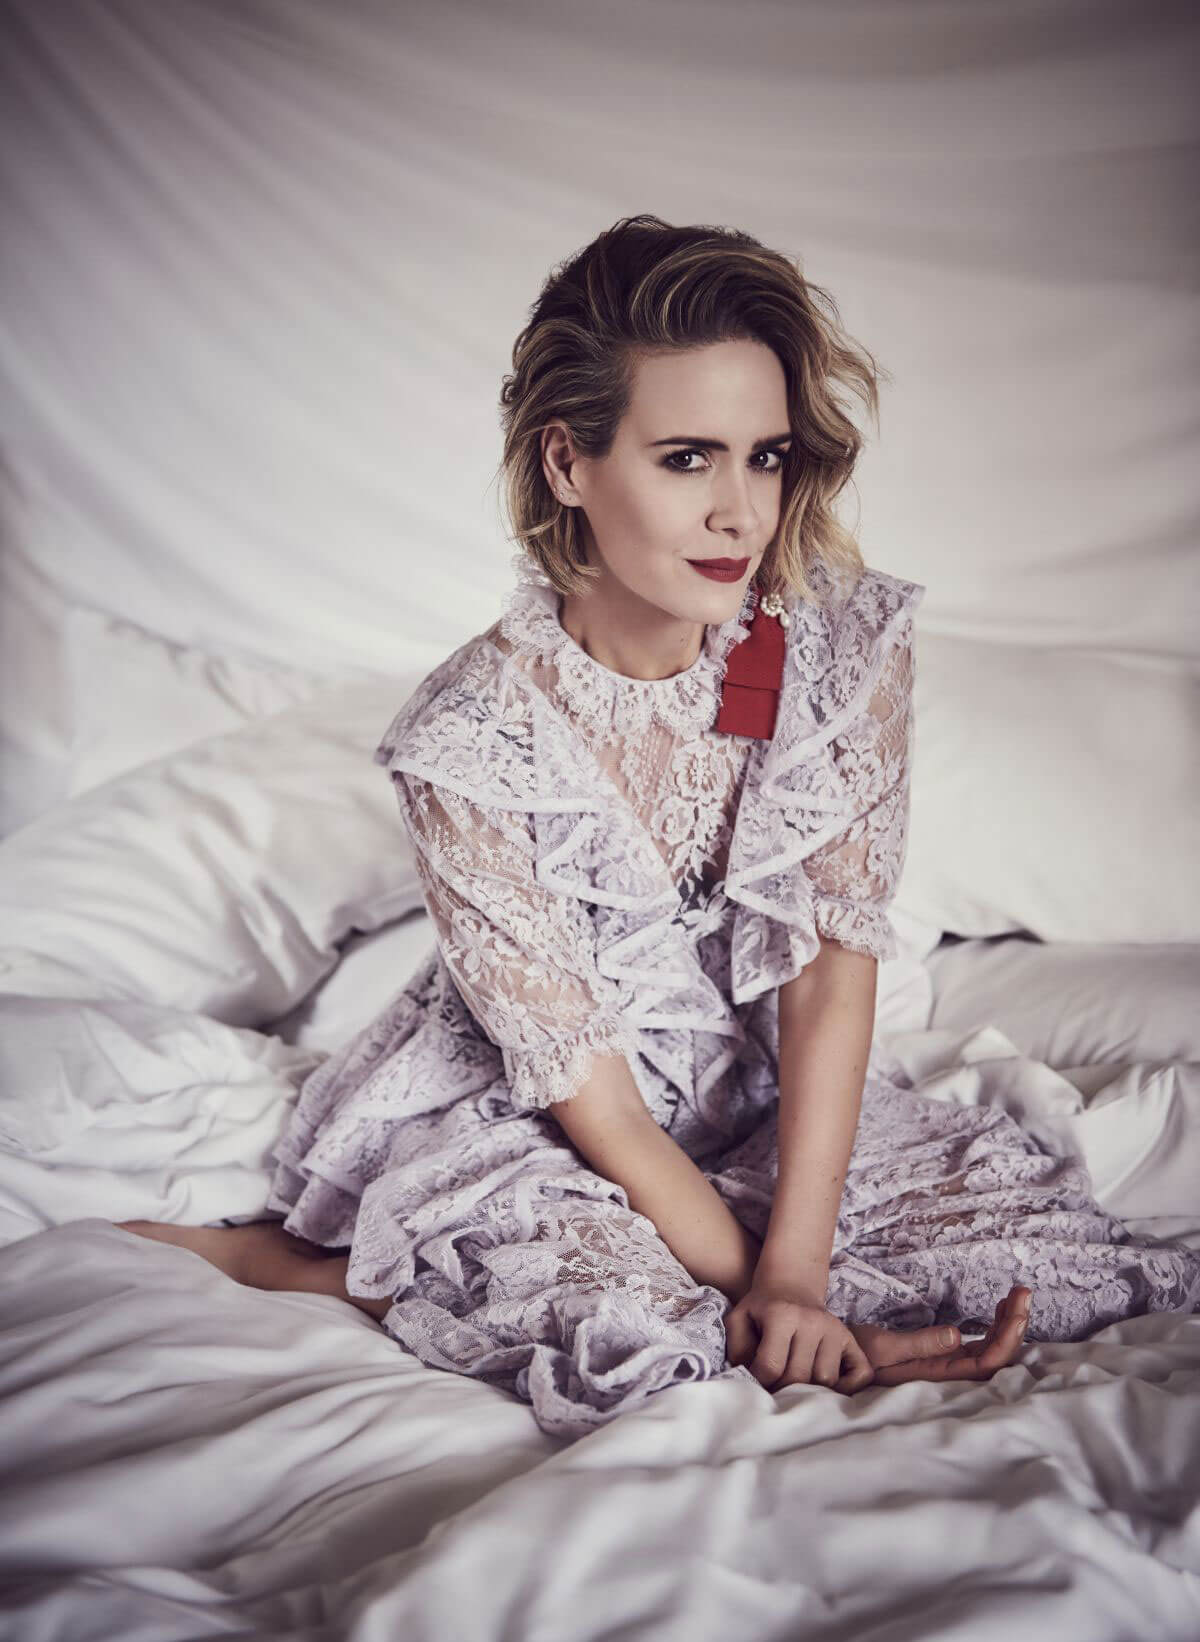 Sarah Paulson Poses for Bustle June 2018 Issue 3